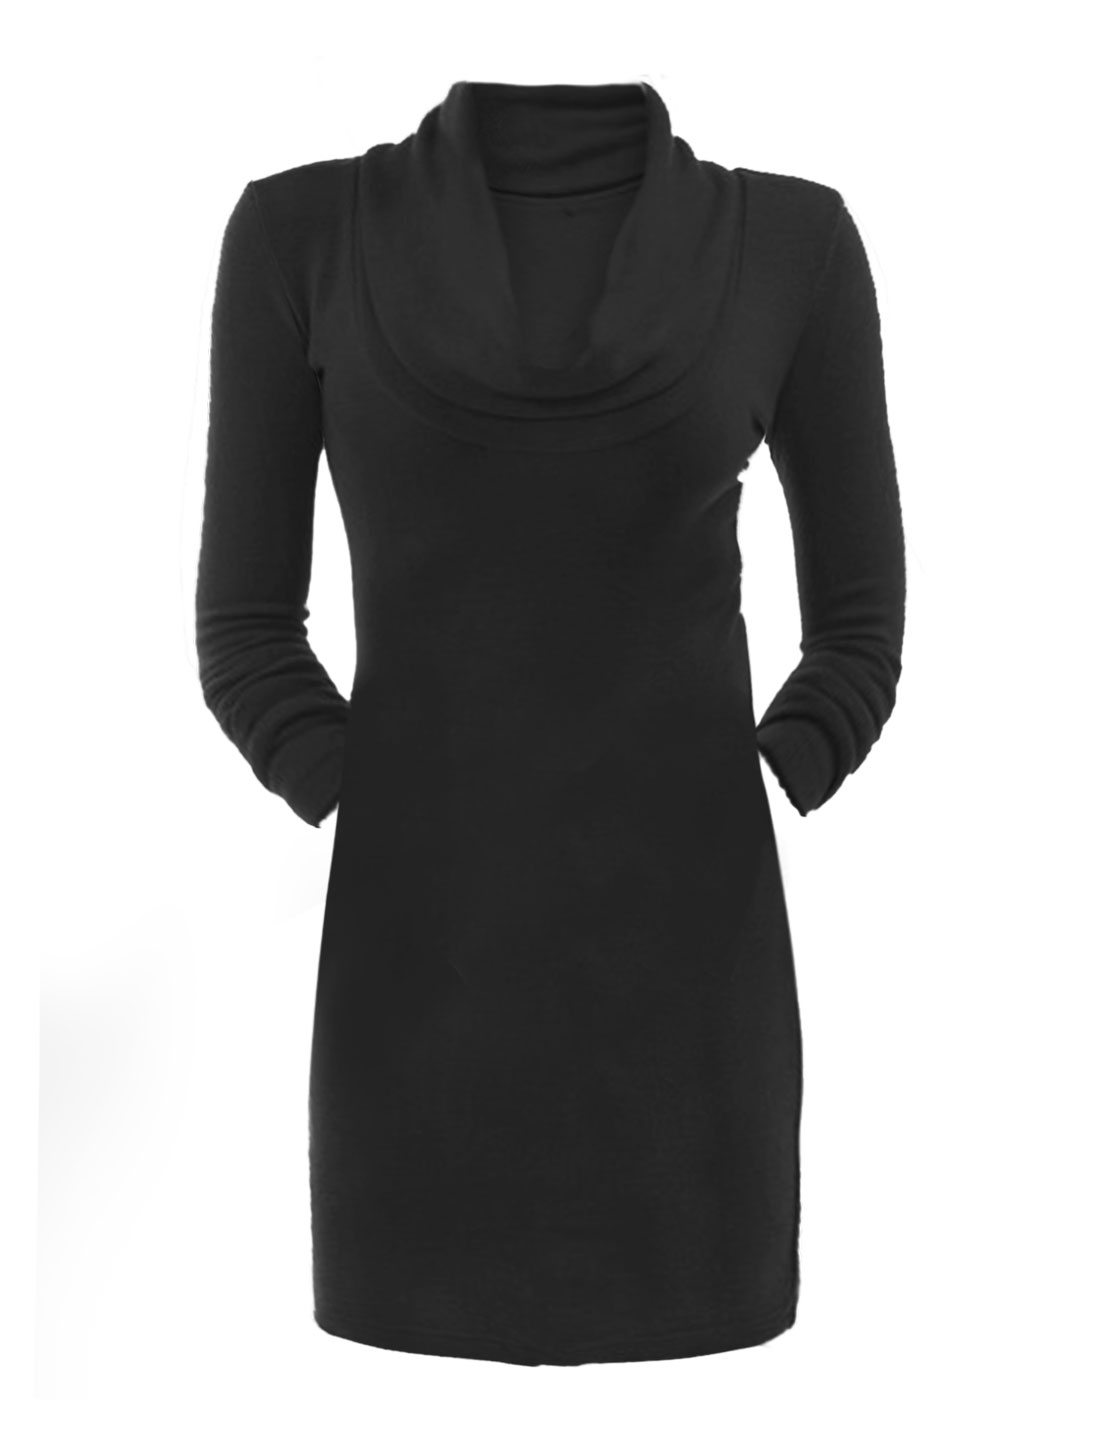 Women Cowl Neck Long Sleeves Slim Fit Sheath Dress Black XL